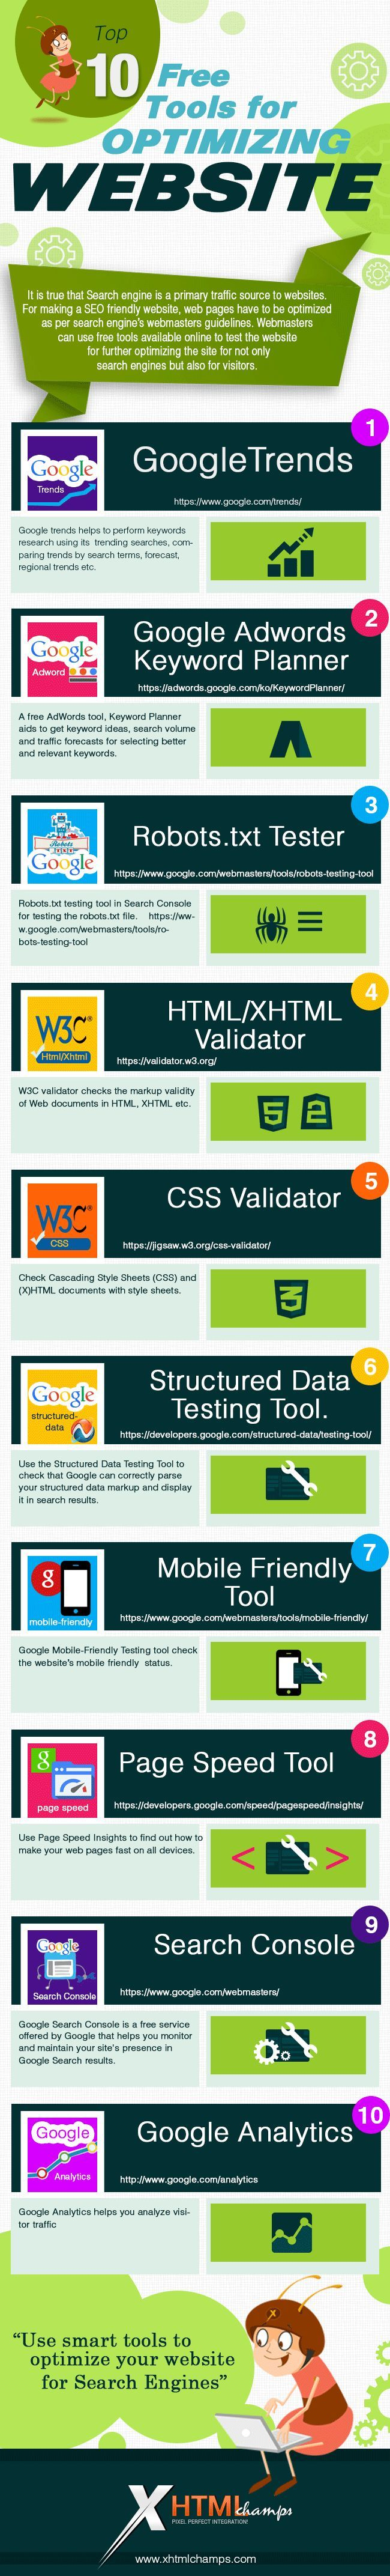 Top 10 Free Tools for Optimizing a Website #infographic                                                                                                                                                                                 More